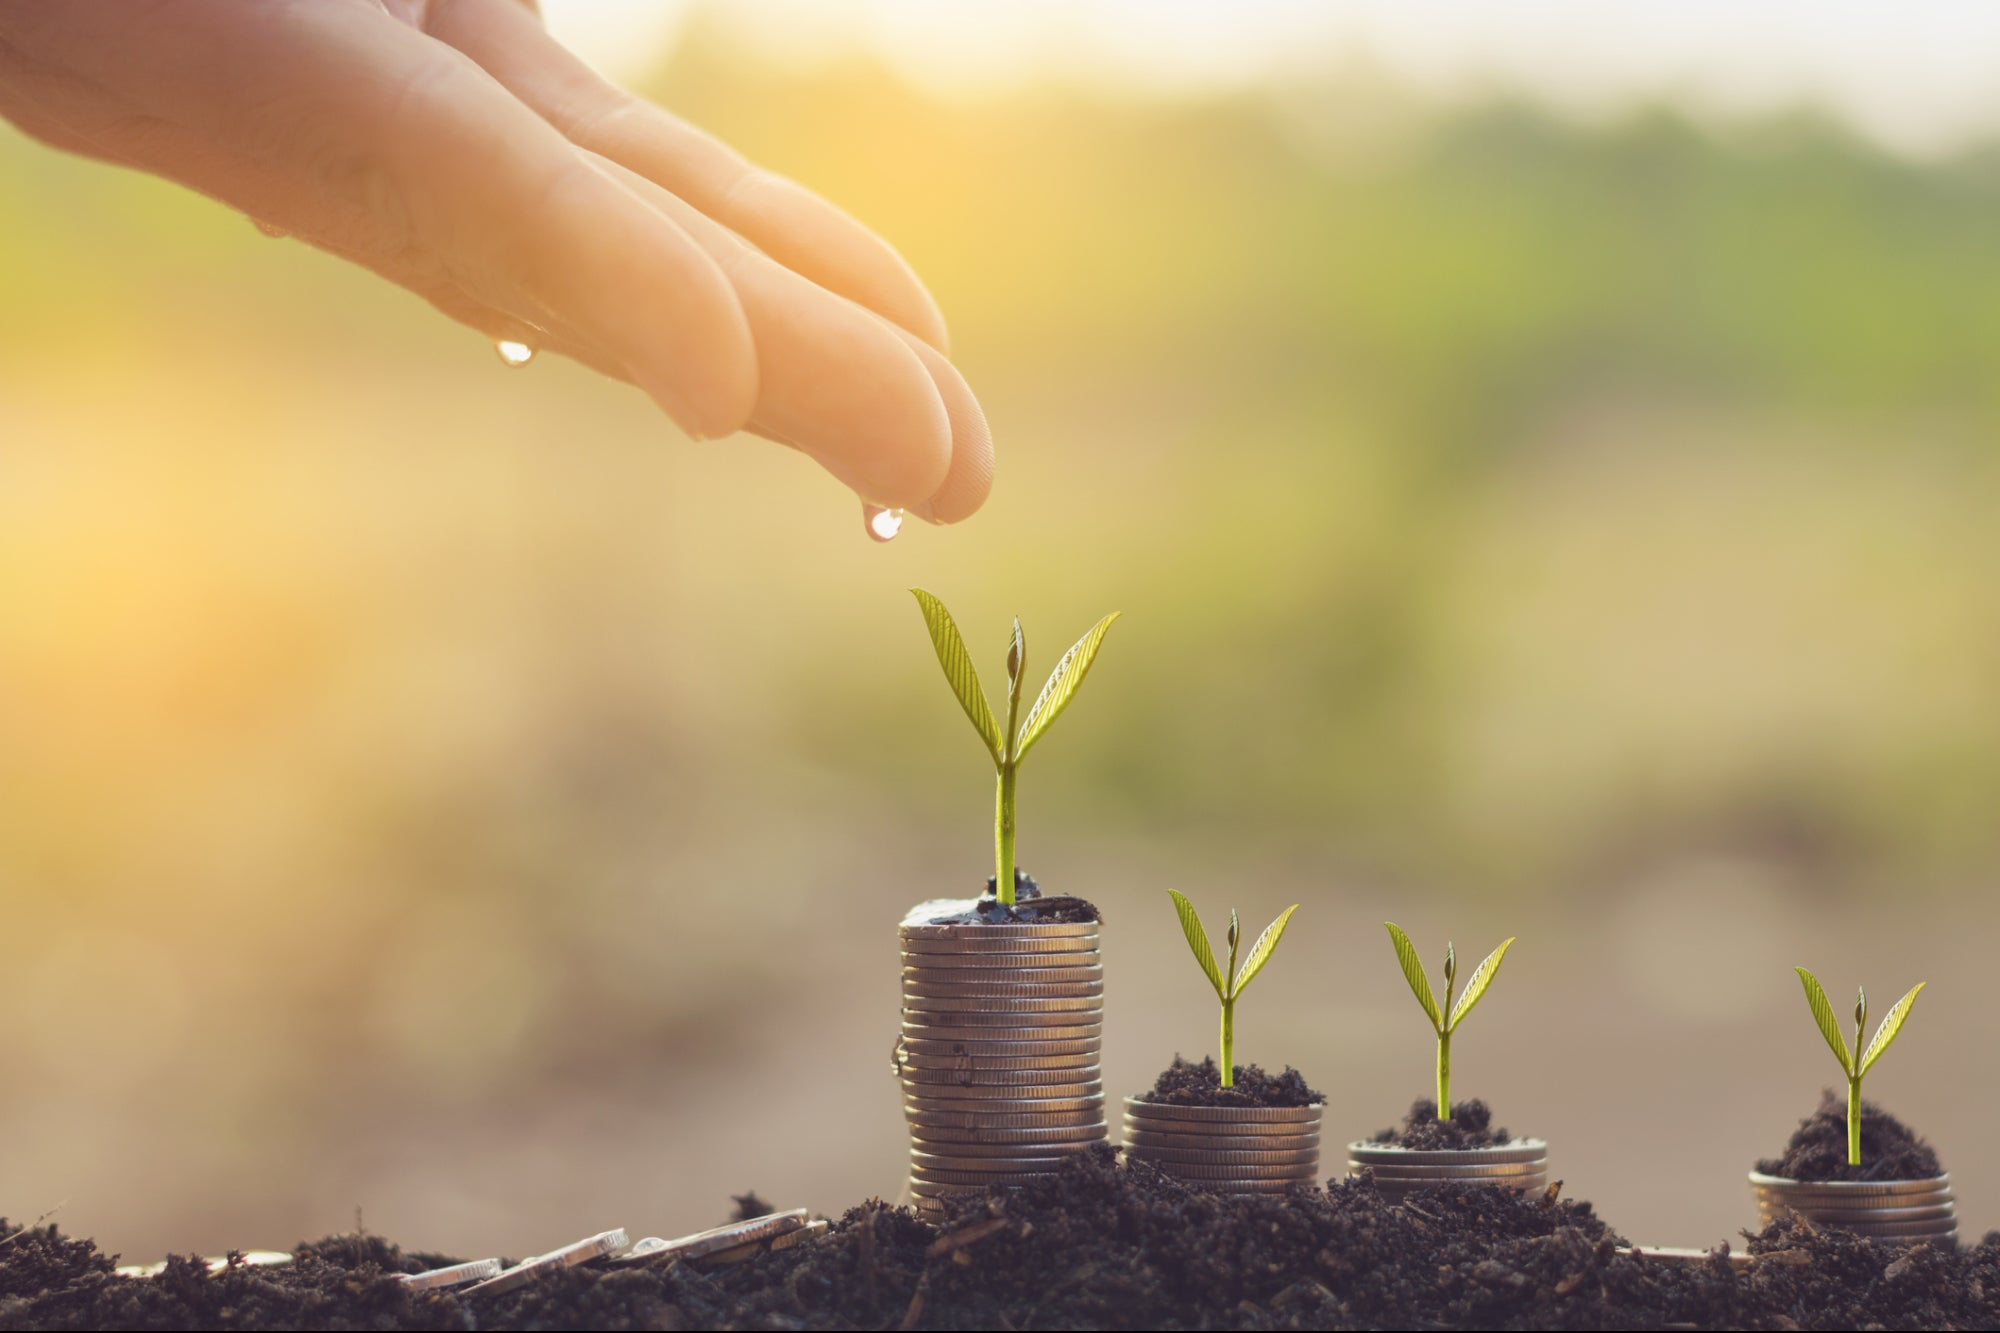 Seed, Sow, Water, Grow: 4 Expert Tips to Secure Angel Investment for Your New Business Venture